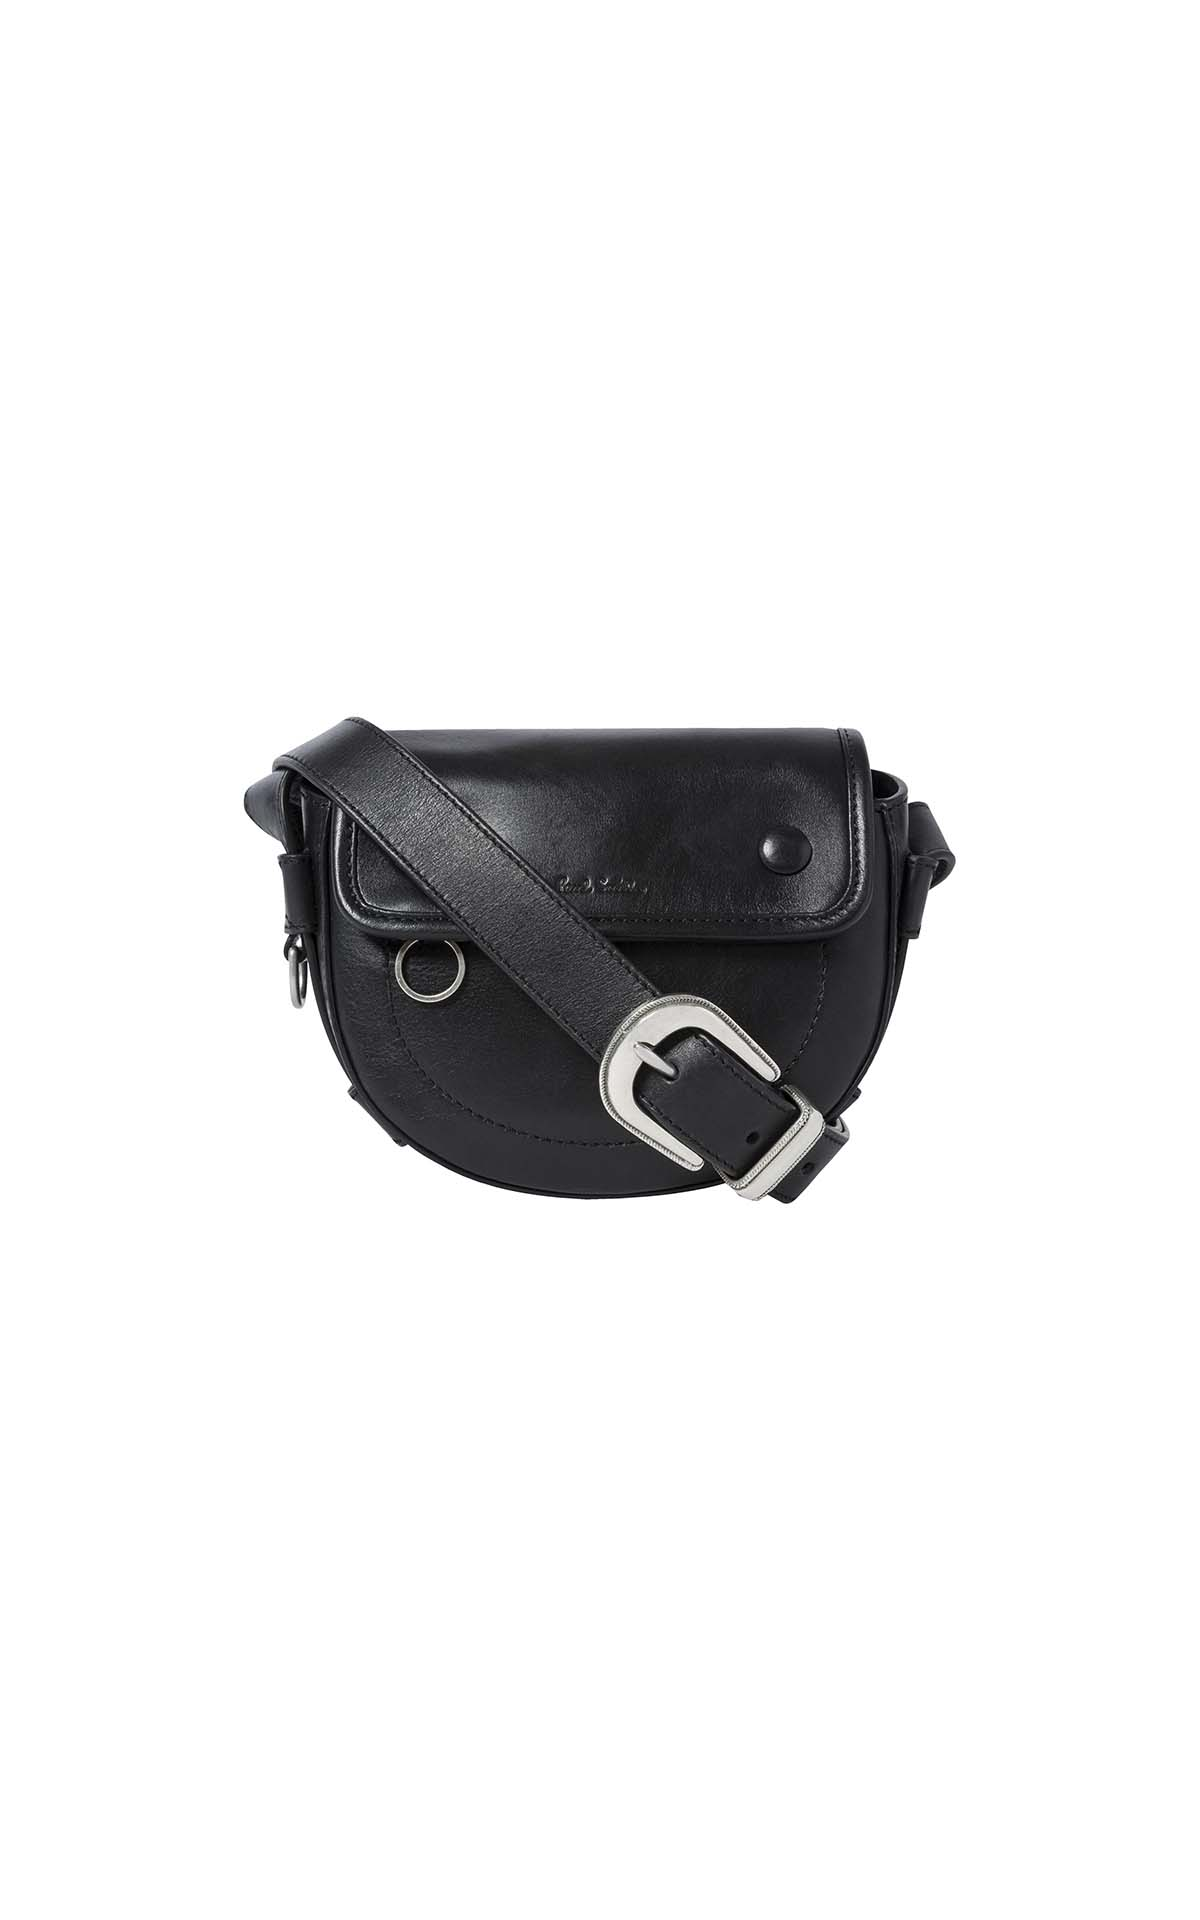 Paul Smith Women's Black Cross Body Bag